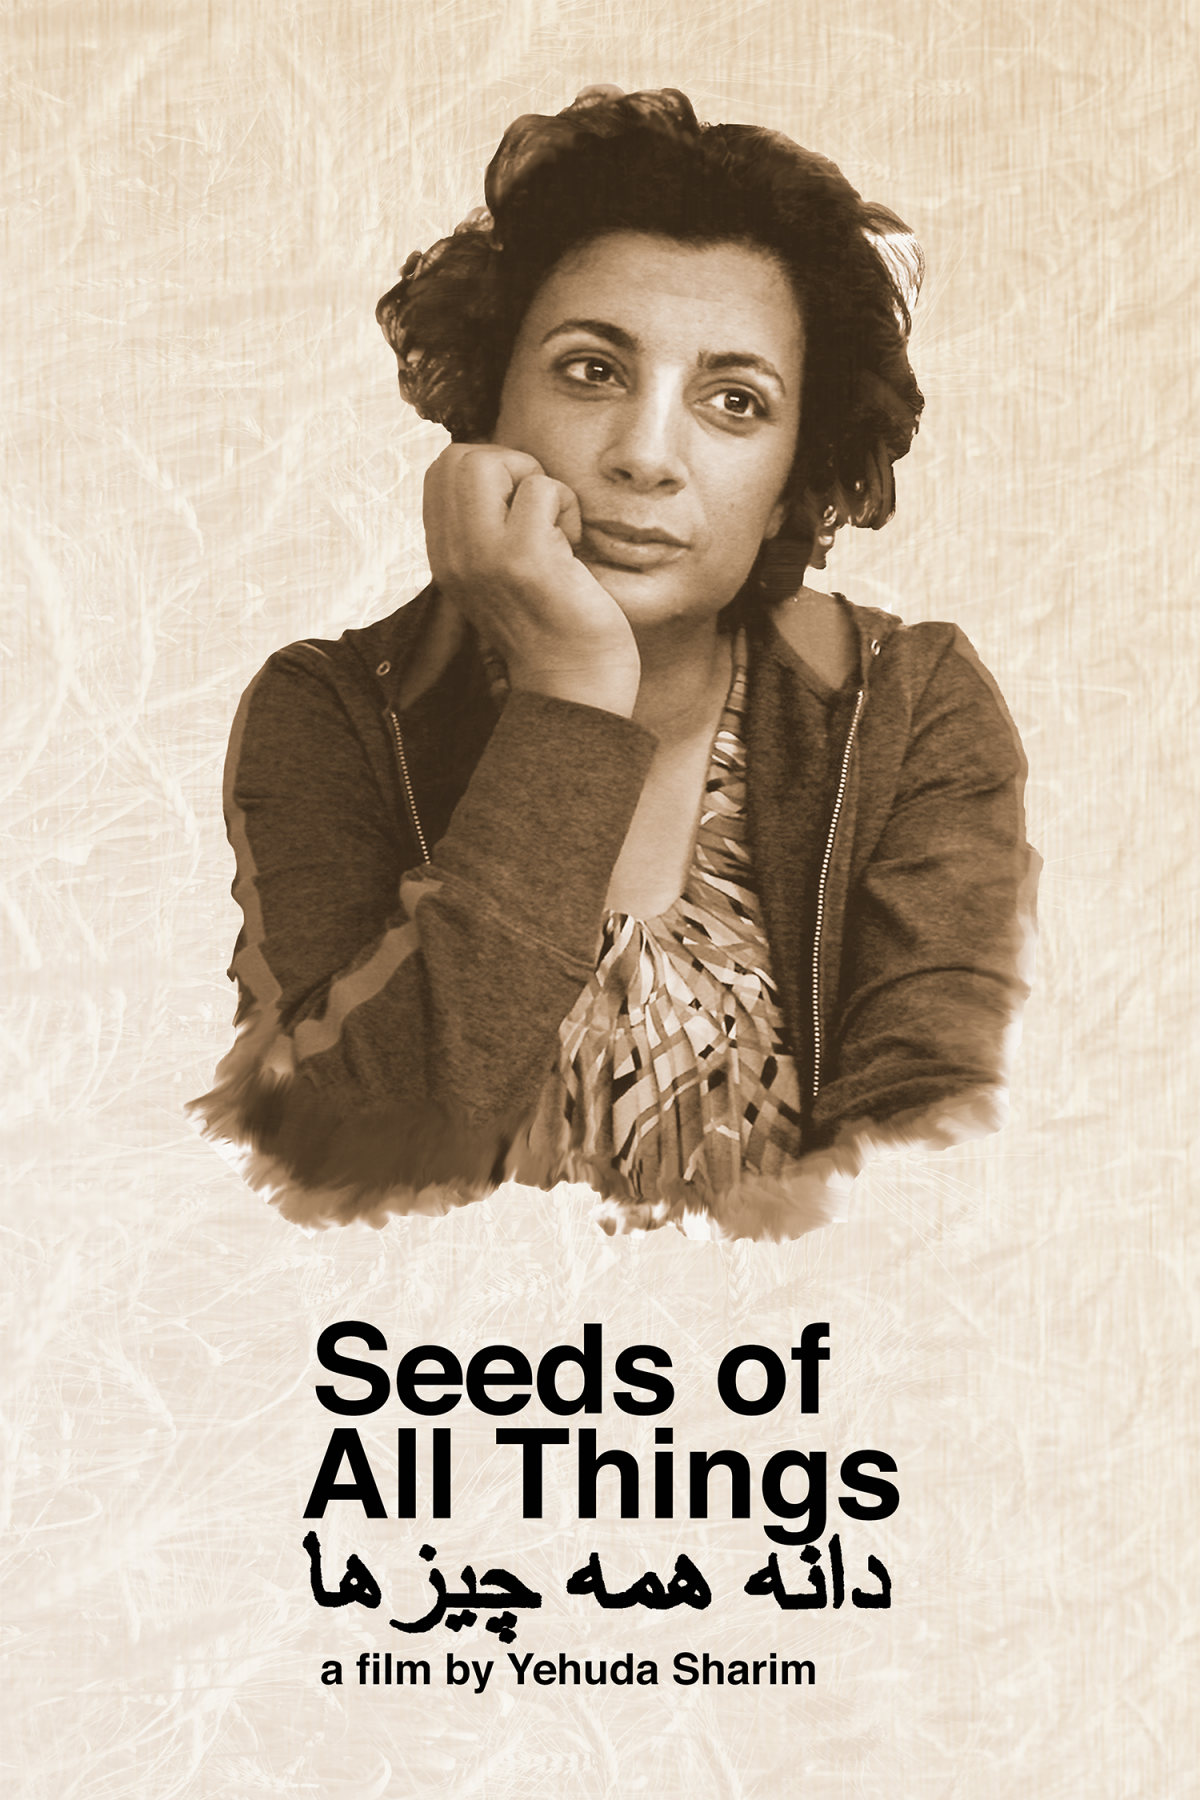 movie poster of Seeds of All Things